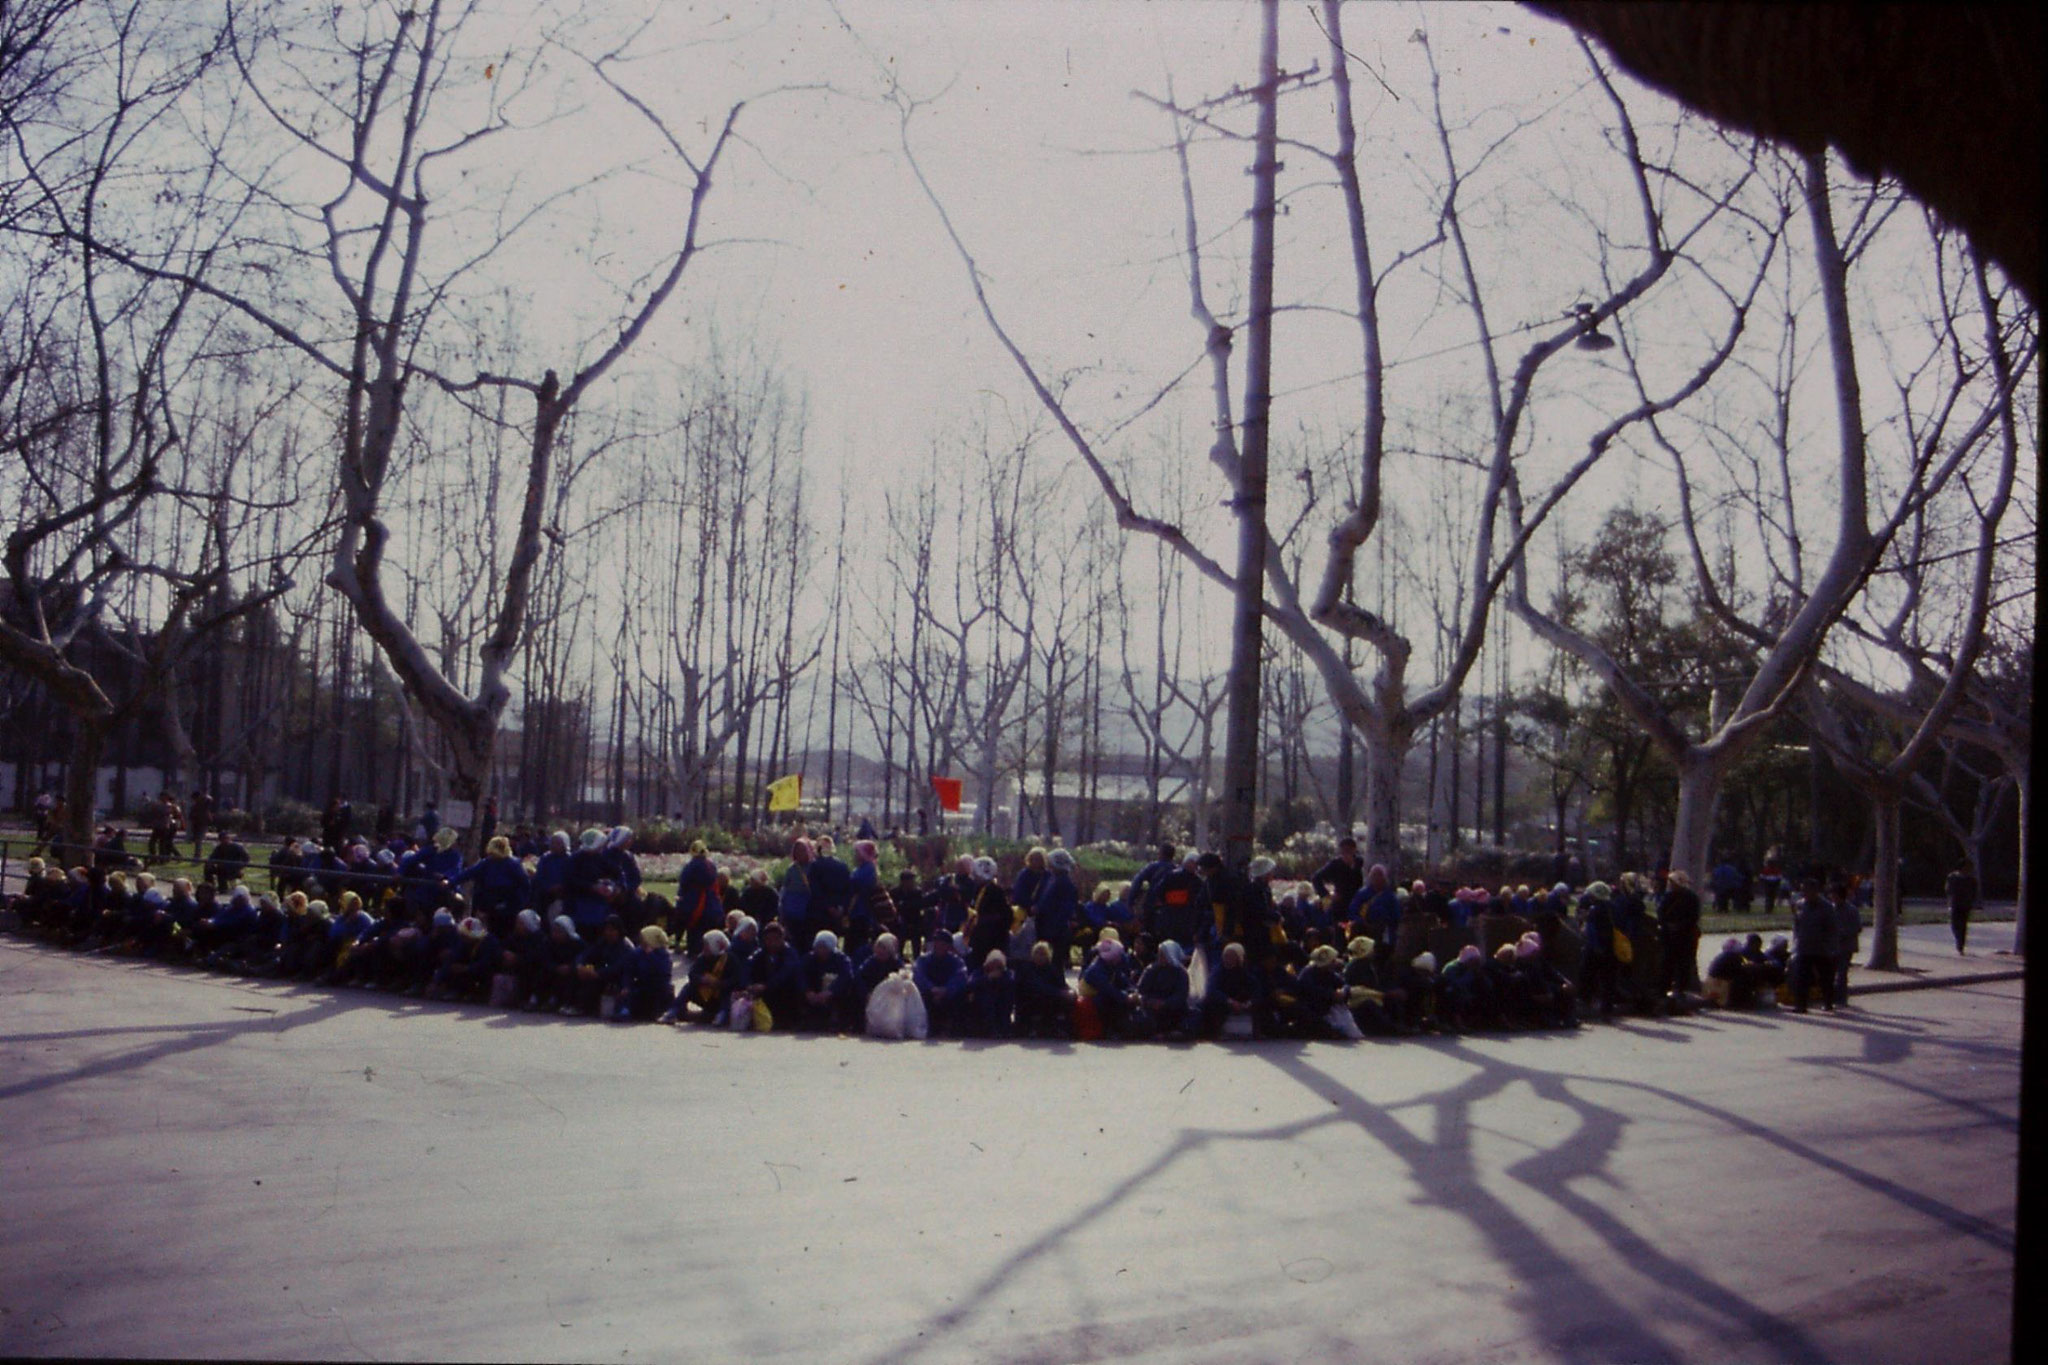 27/3/1989: 0: Hangzhou Ling Si temple pilgrims resting